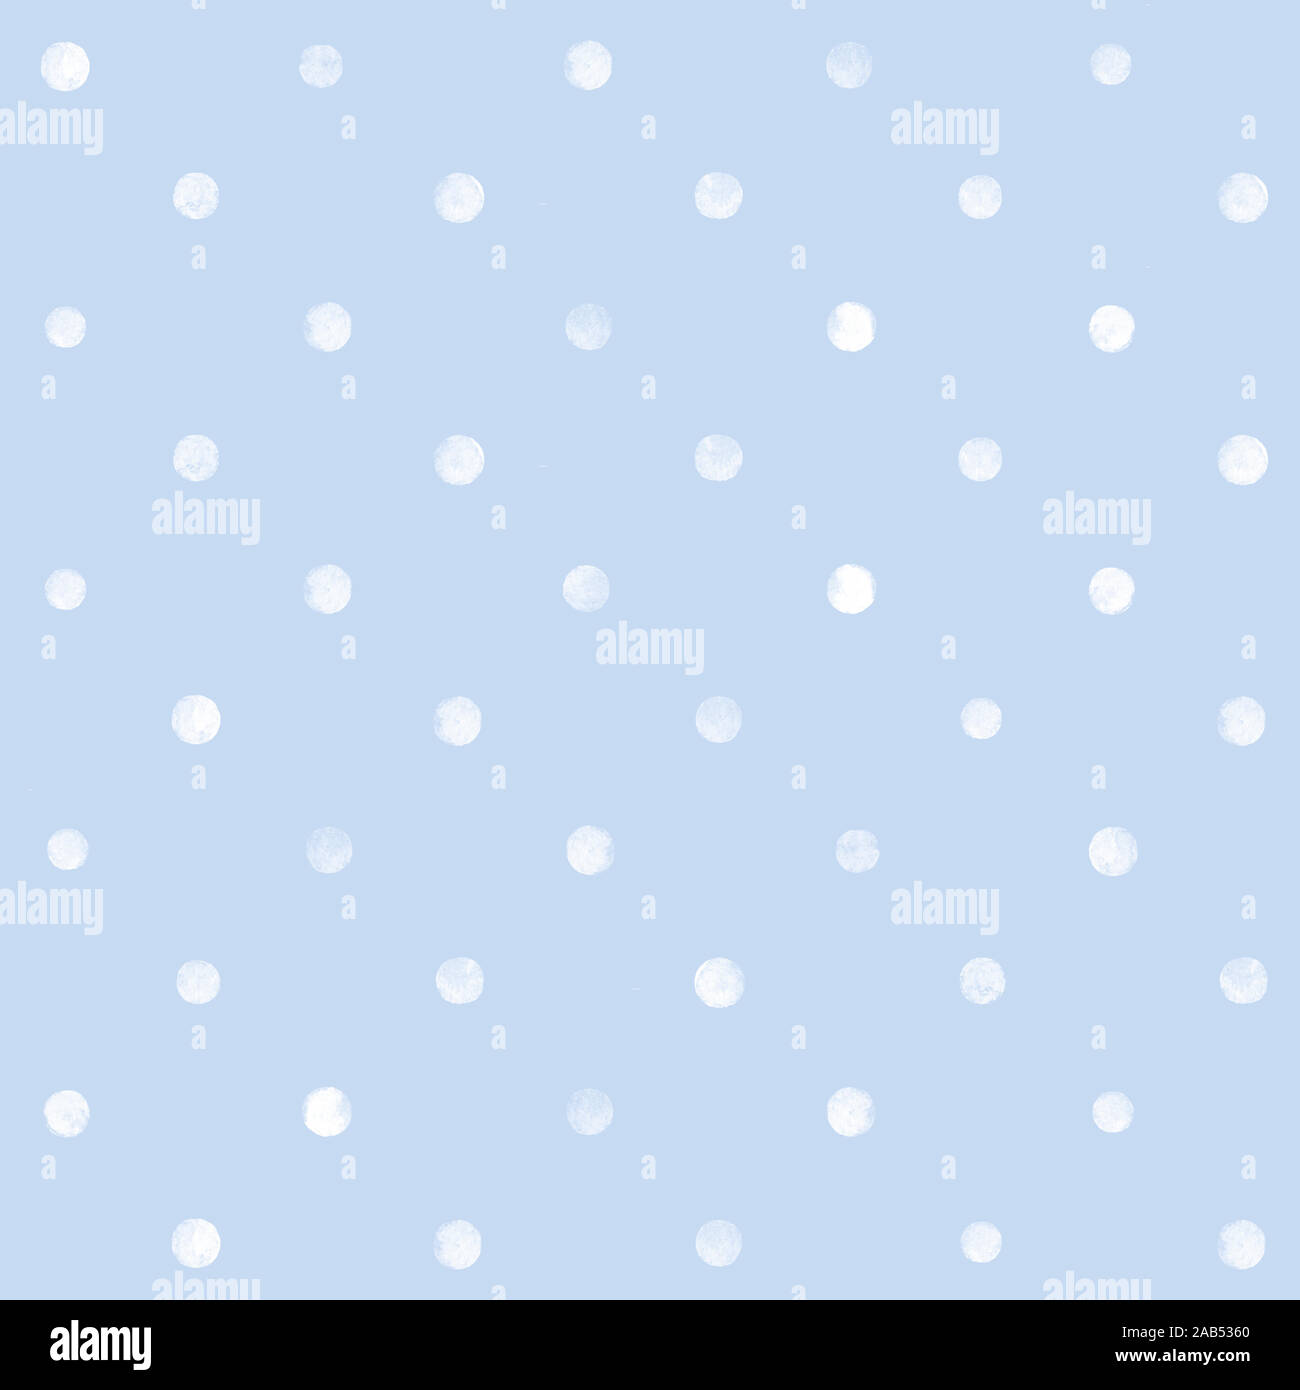 Seamless pattern. White circles. Blue background. Watercolor. Print quality Stock Photo